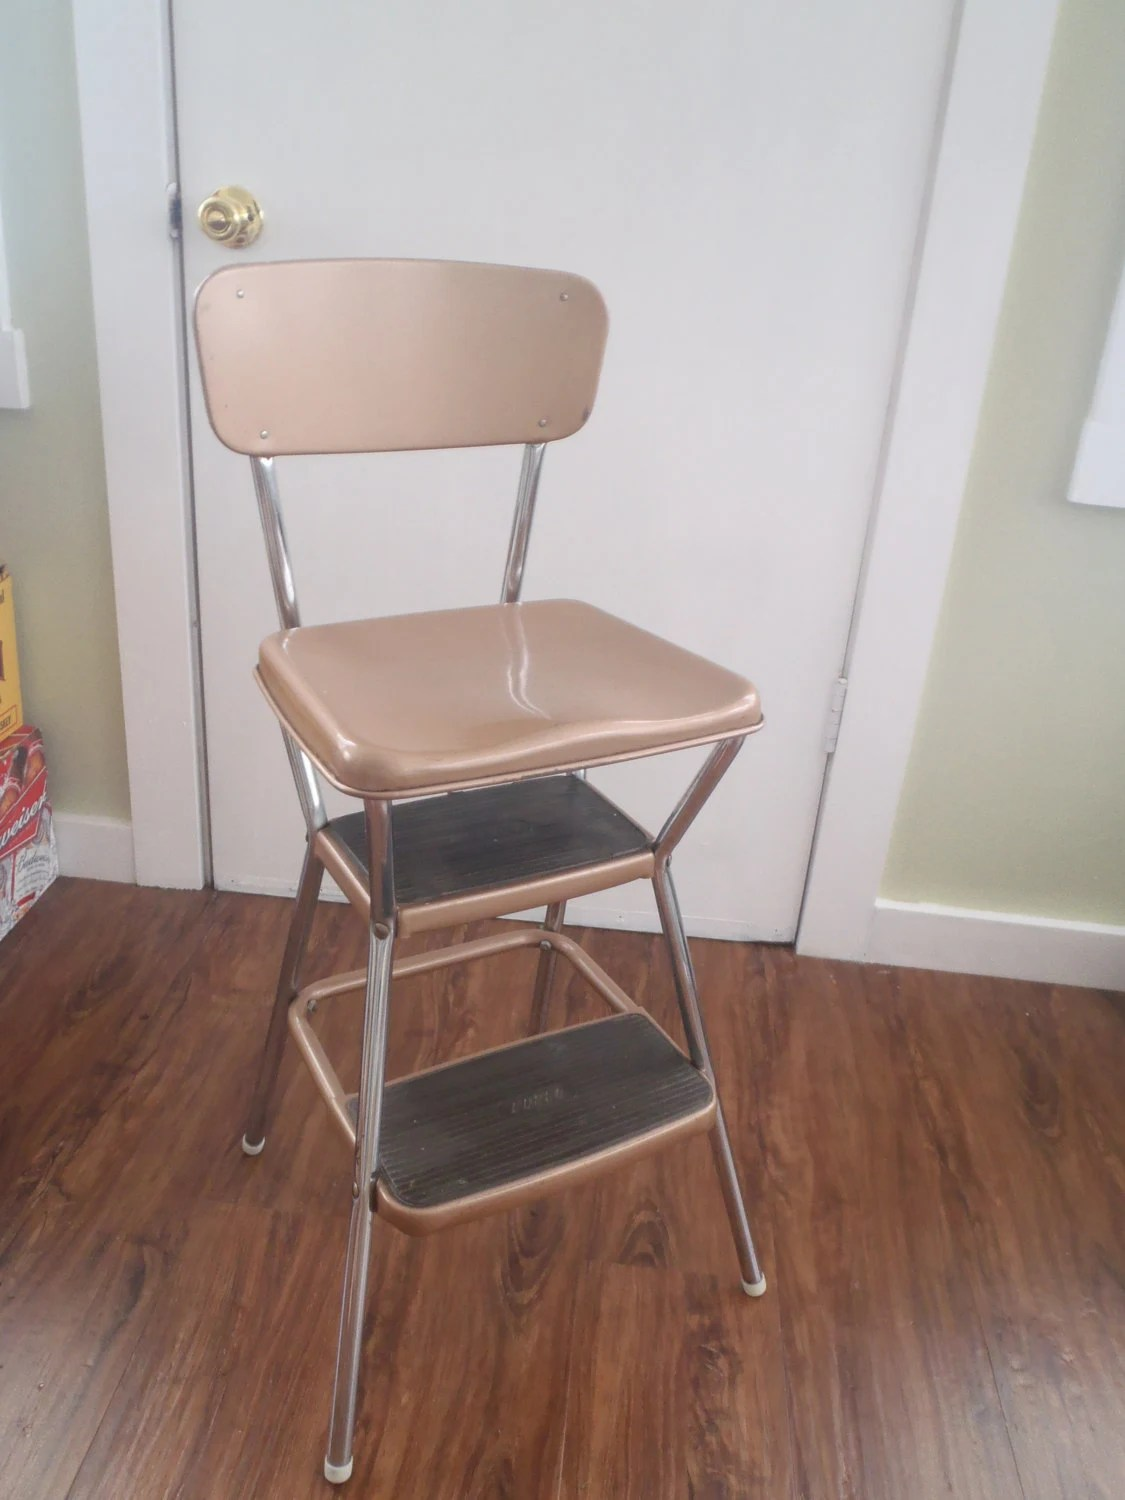 Vintage Cosco Kitchen Step Stool Chair with Flip Up Seat All